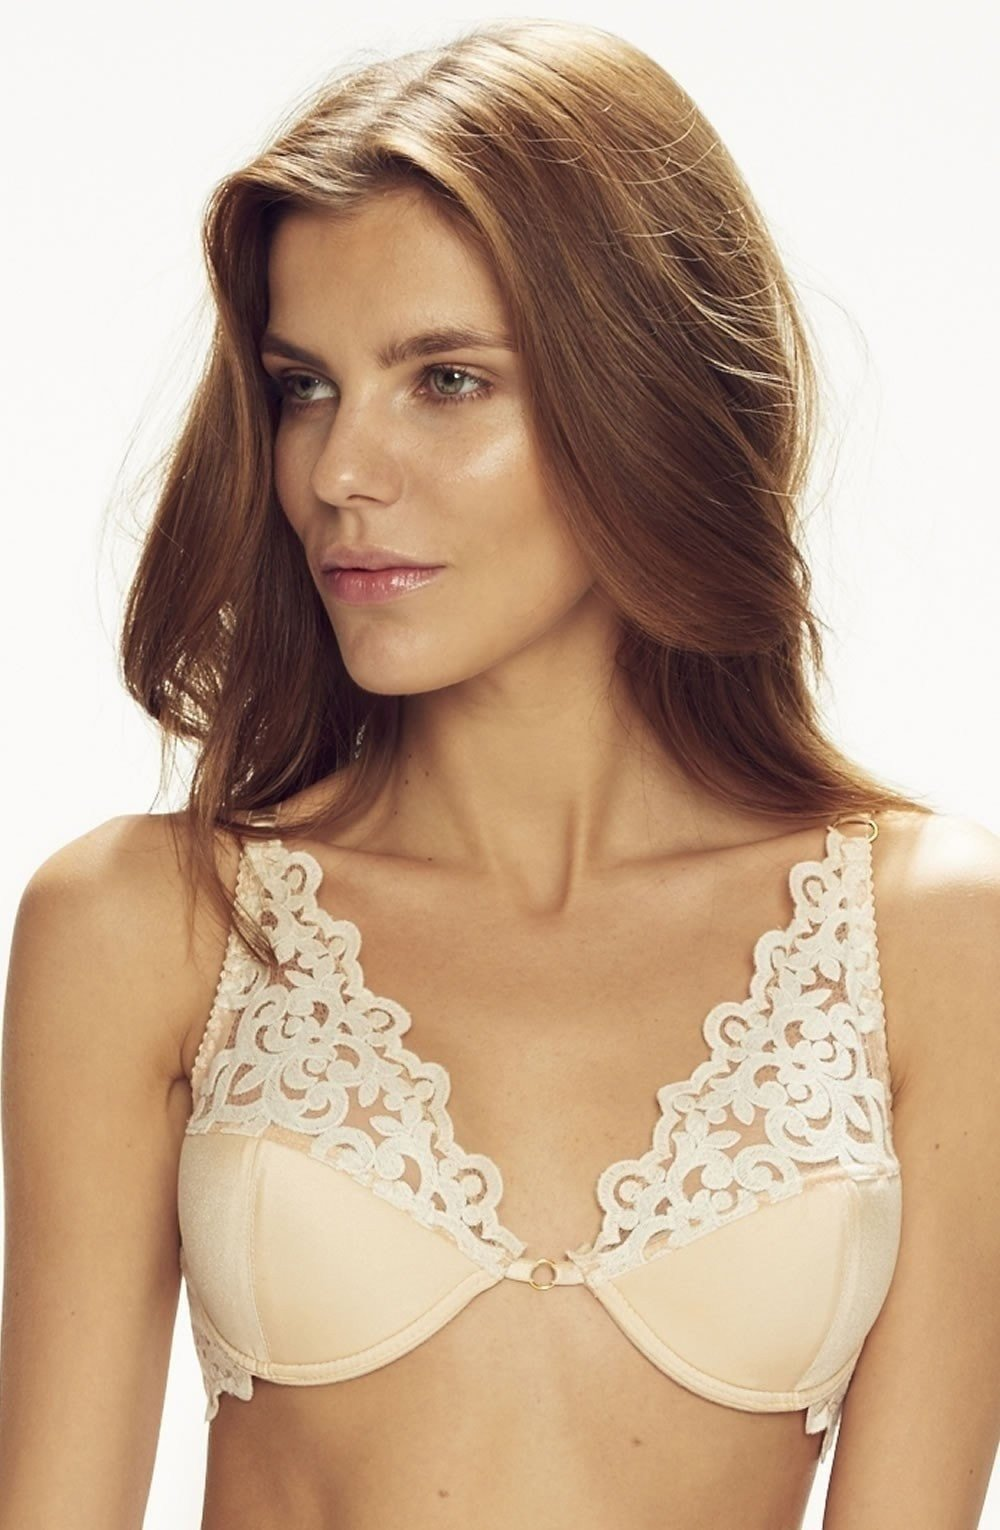 Caprice Amber Moon II Bra - Soft Cup Bras - Caprice Natural Fashion - Charm and Lace Boutique